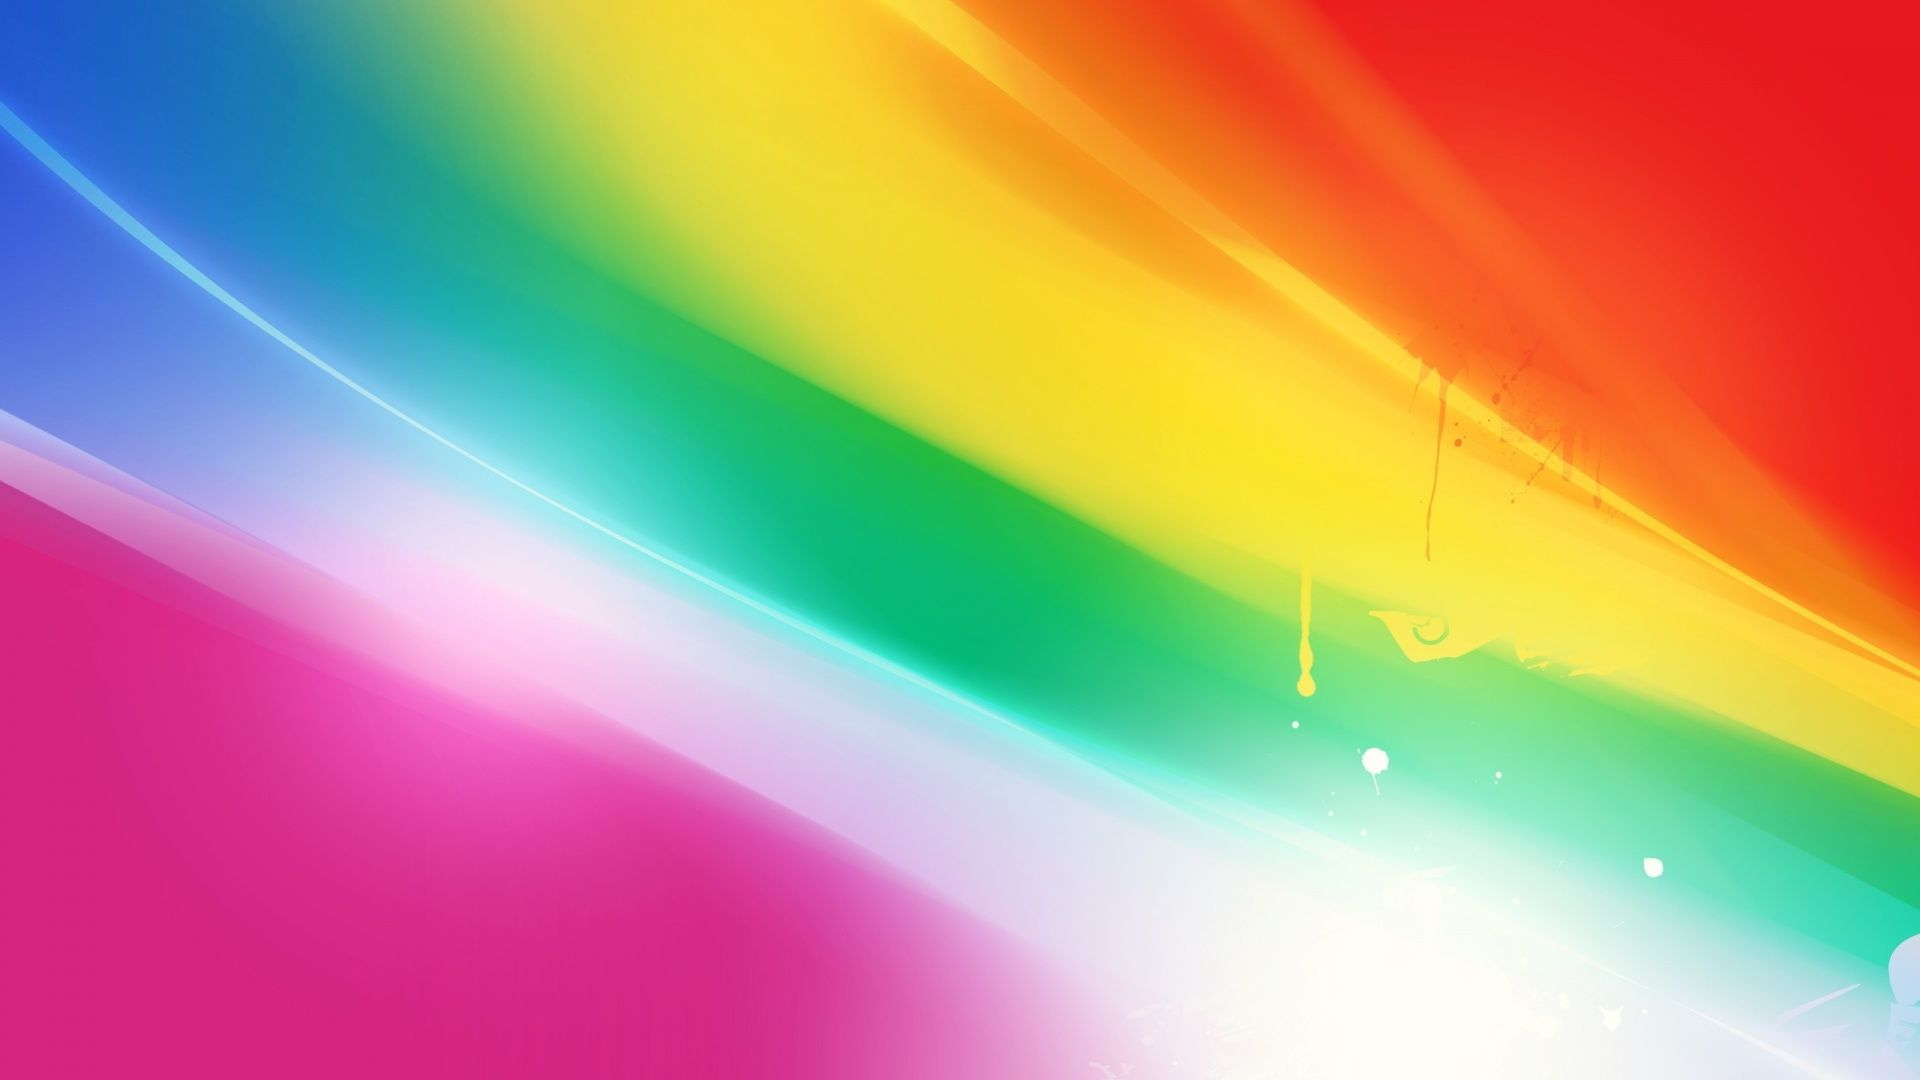 Abstract Colorful Art Twisted Rainbow Wallpaper 1920x1080